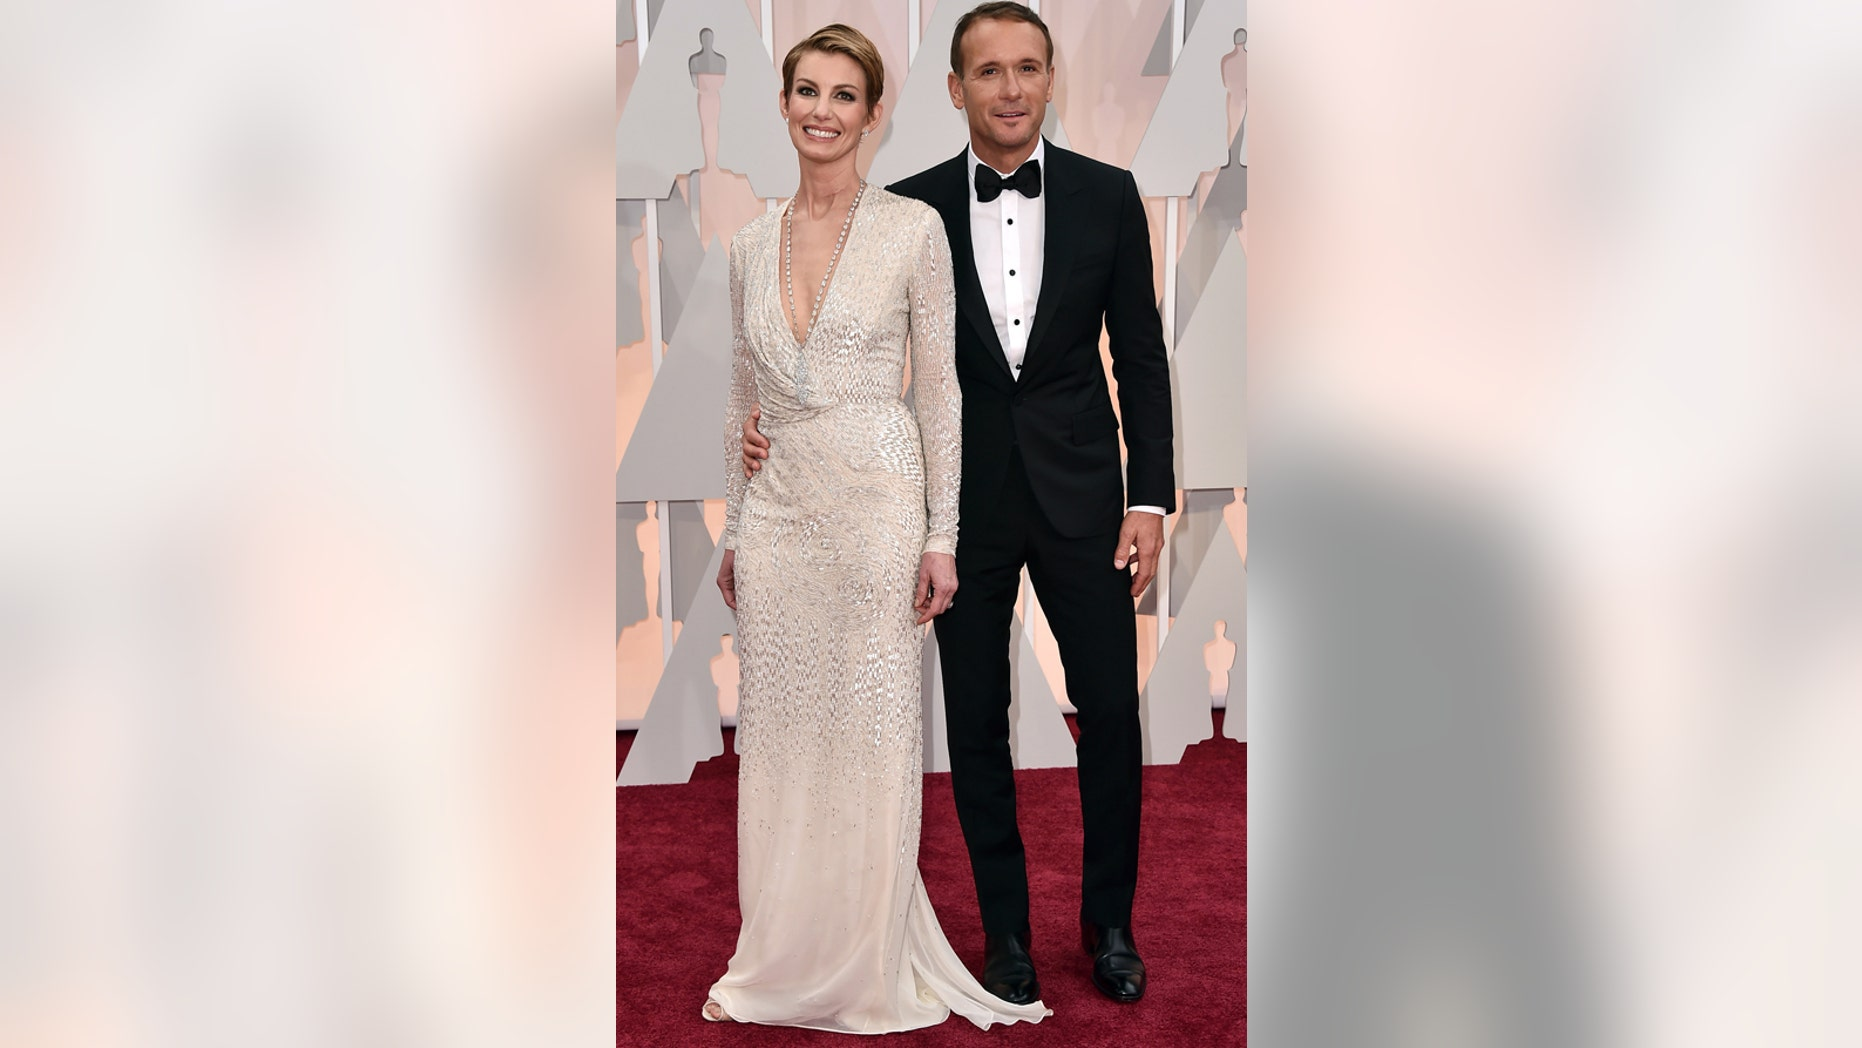 Faith Hill, left, and Tim McGraw arrive at the Oscars on Sunday, Feb. 22, 2015, at the Dolby Theatre in Los Angeles.